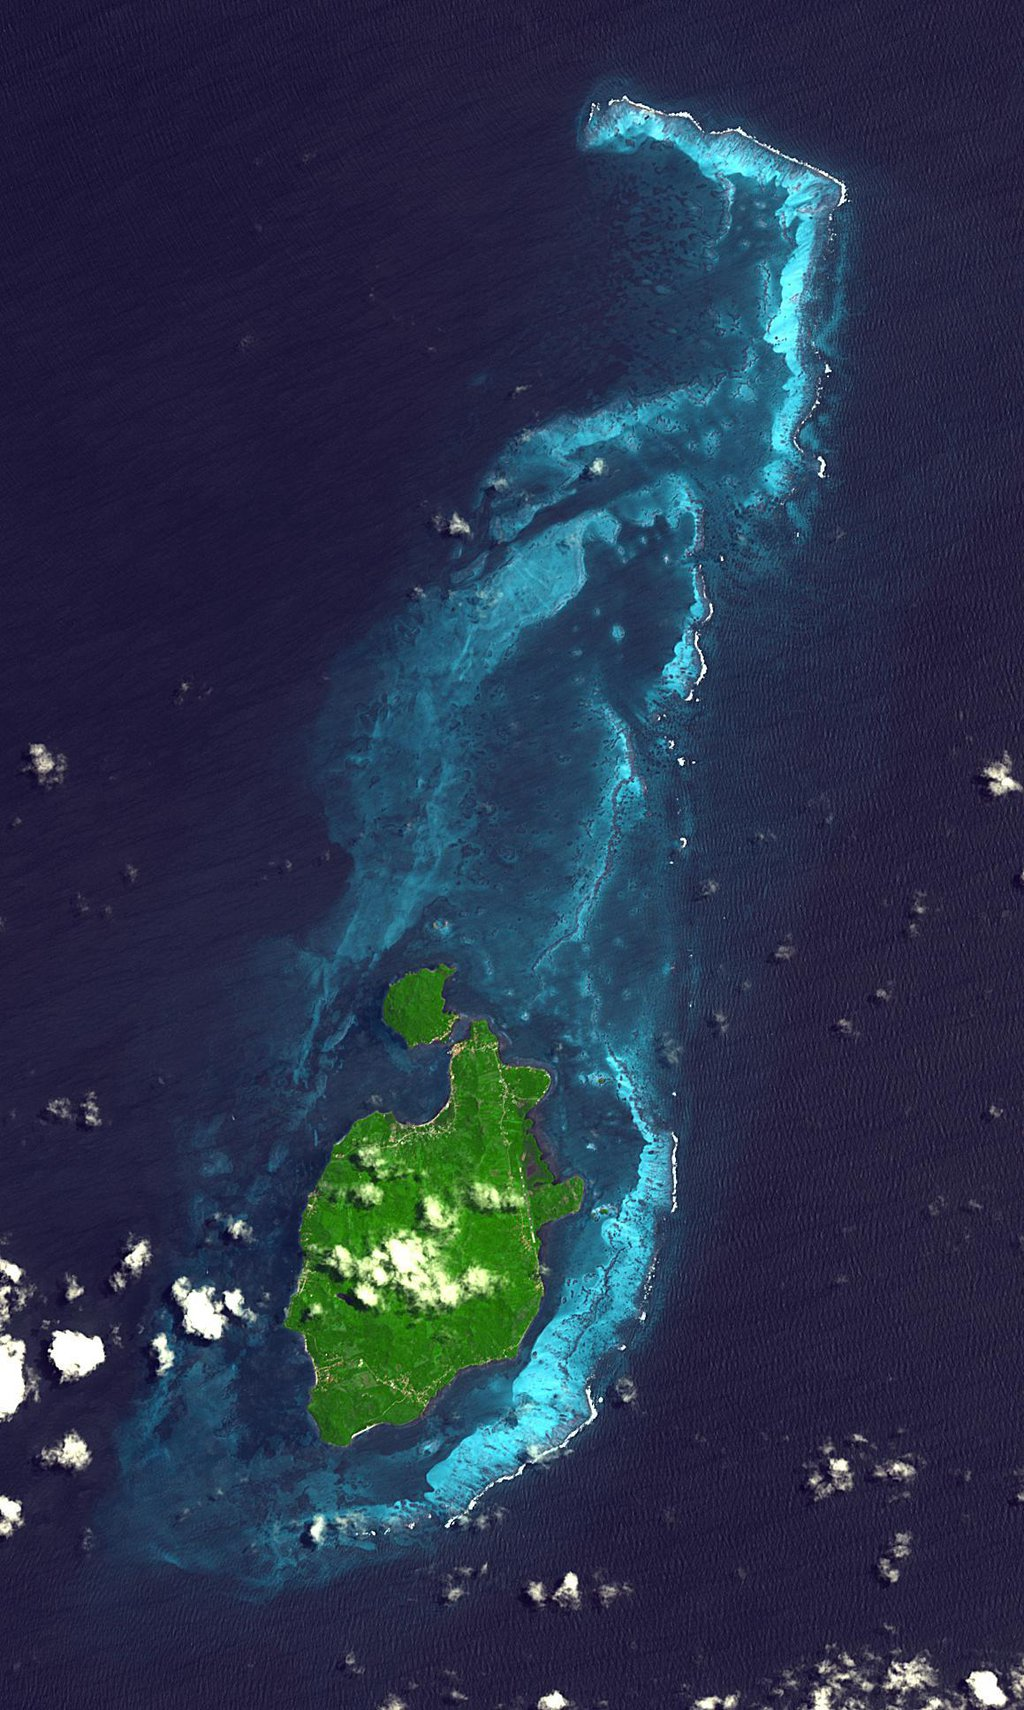 NASA's Terra spacecraft shows Providencia Island, located in the Caribbean Sea. It is part of Colombia even though located 800 km northwest of mainland Colombia.